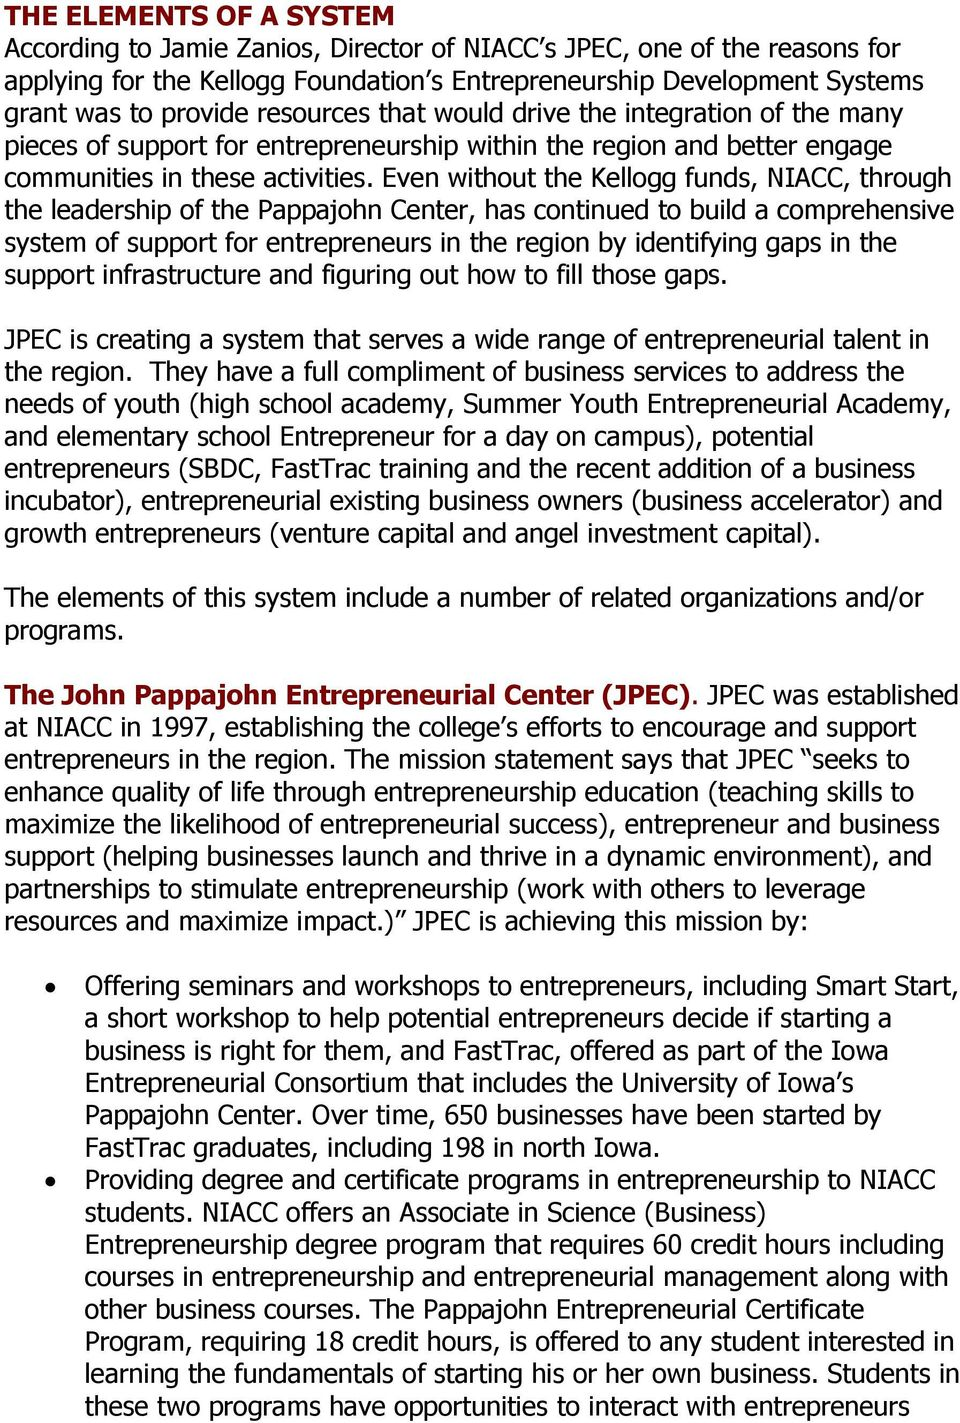 Even without the Kellogg funds, NIACC, through the leadership of the Pappajohn Center, has continued to build a comprehensive system of support for entrepreneurs in the region by identifying gaps in